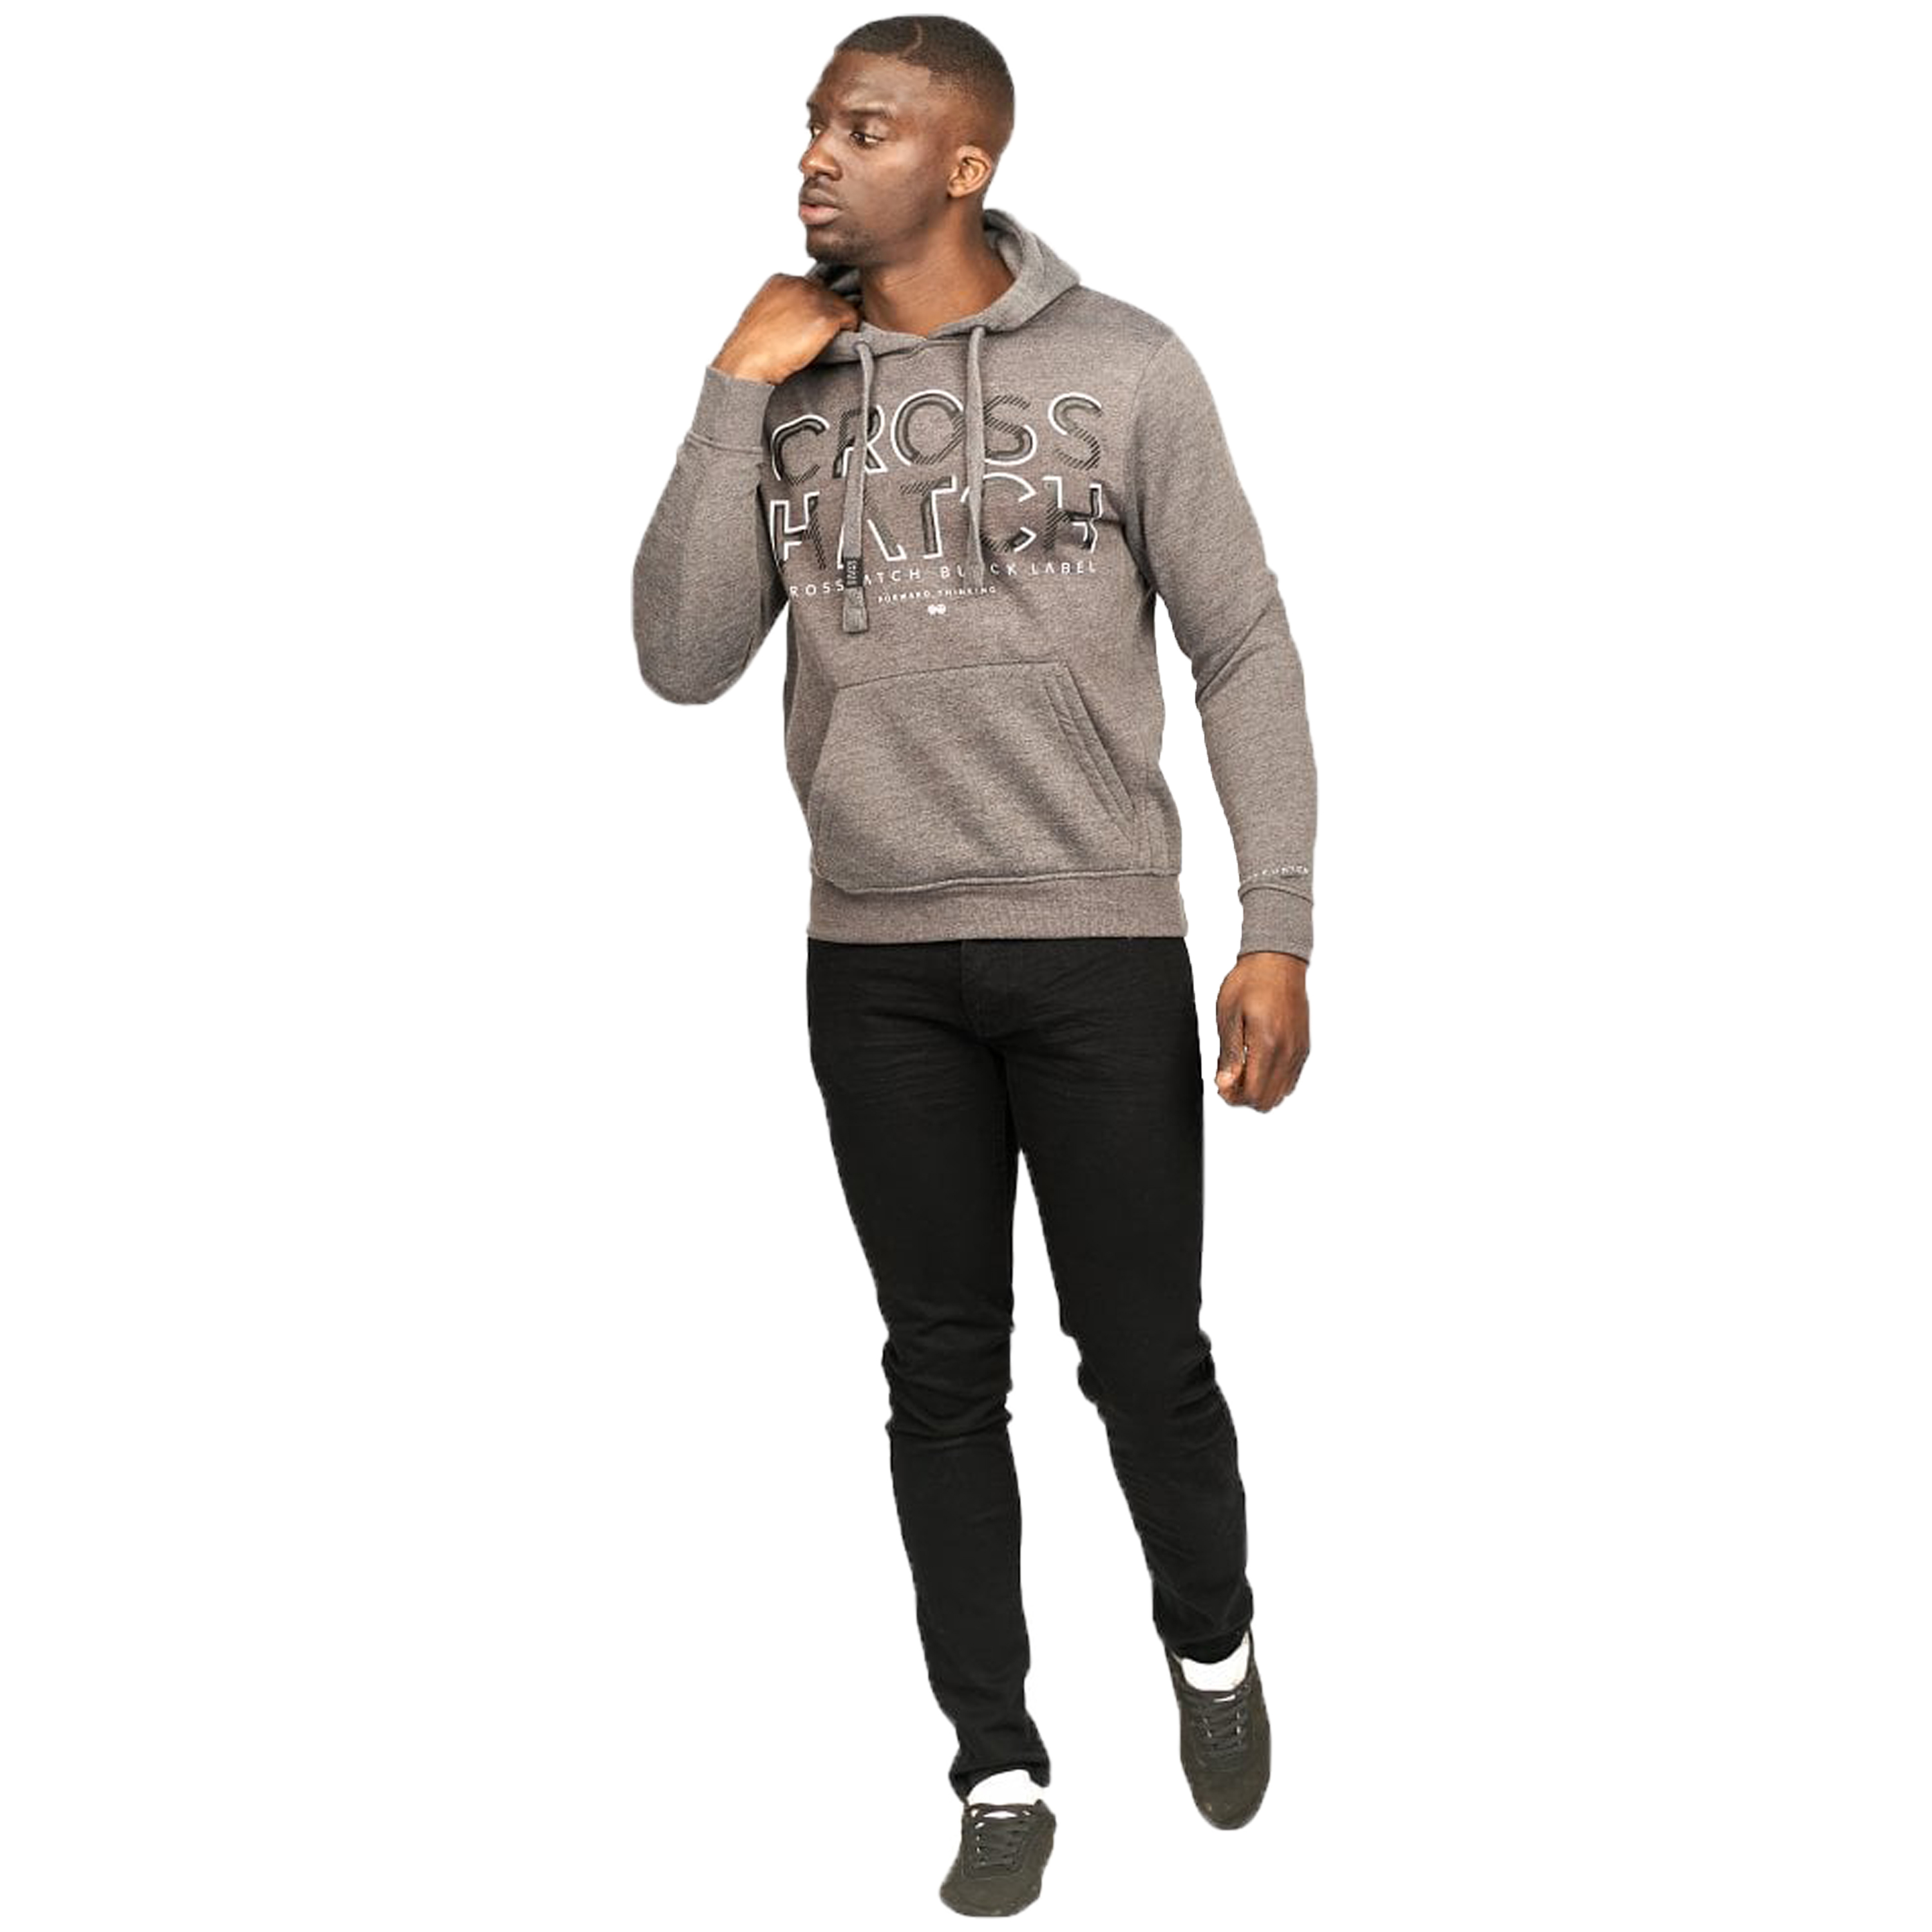 Mens-Sweatshirt-By-Crosshatch-Over-The-Head-Hoodie-Printed-Pullover-Cotton-Top thumbnail 11